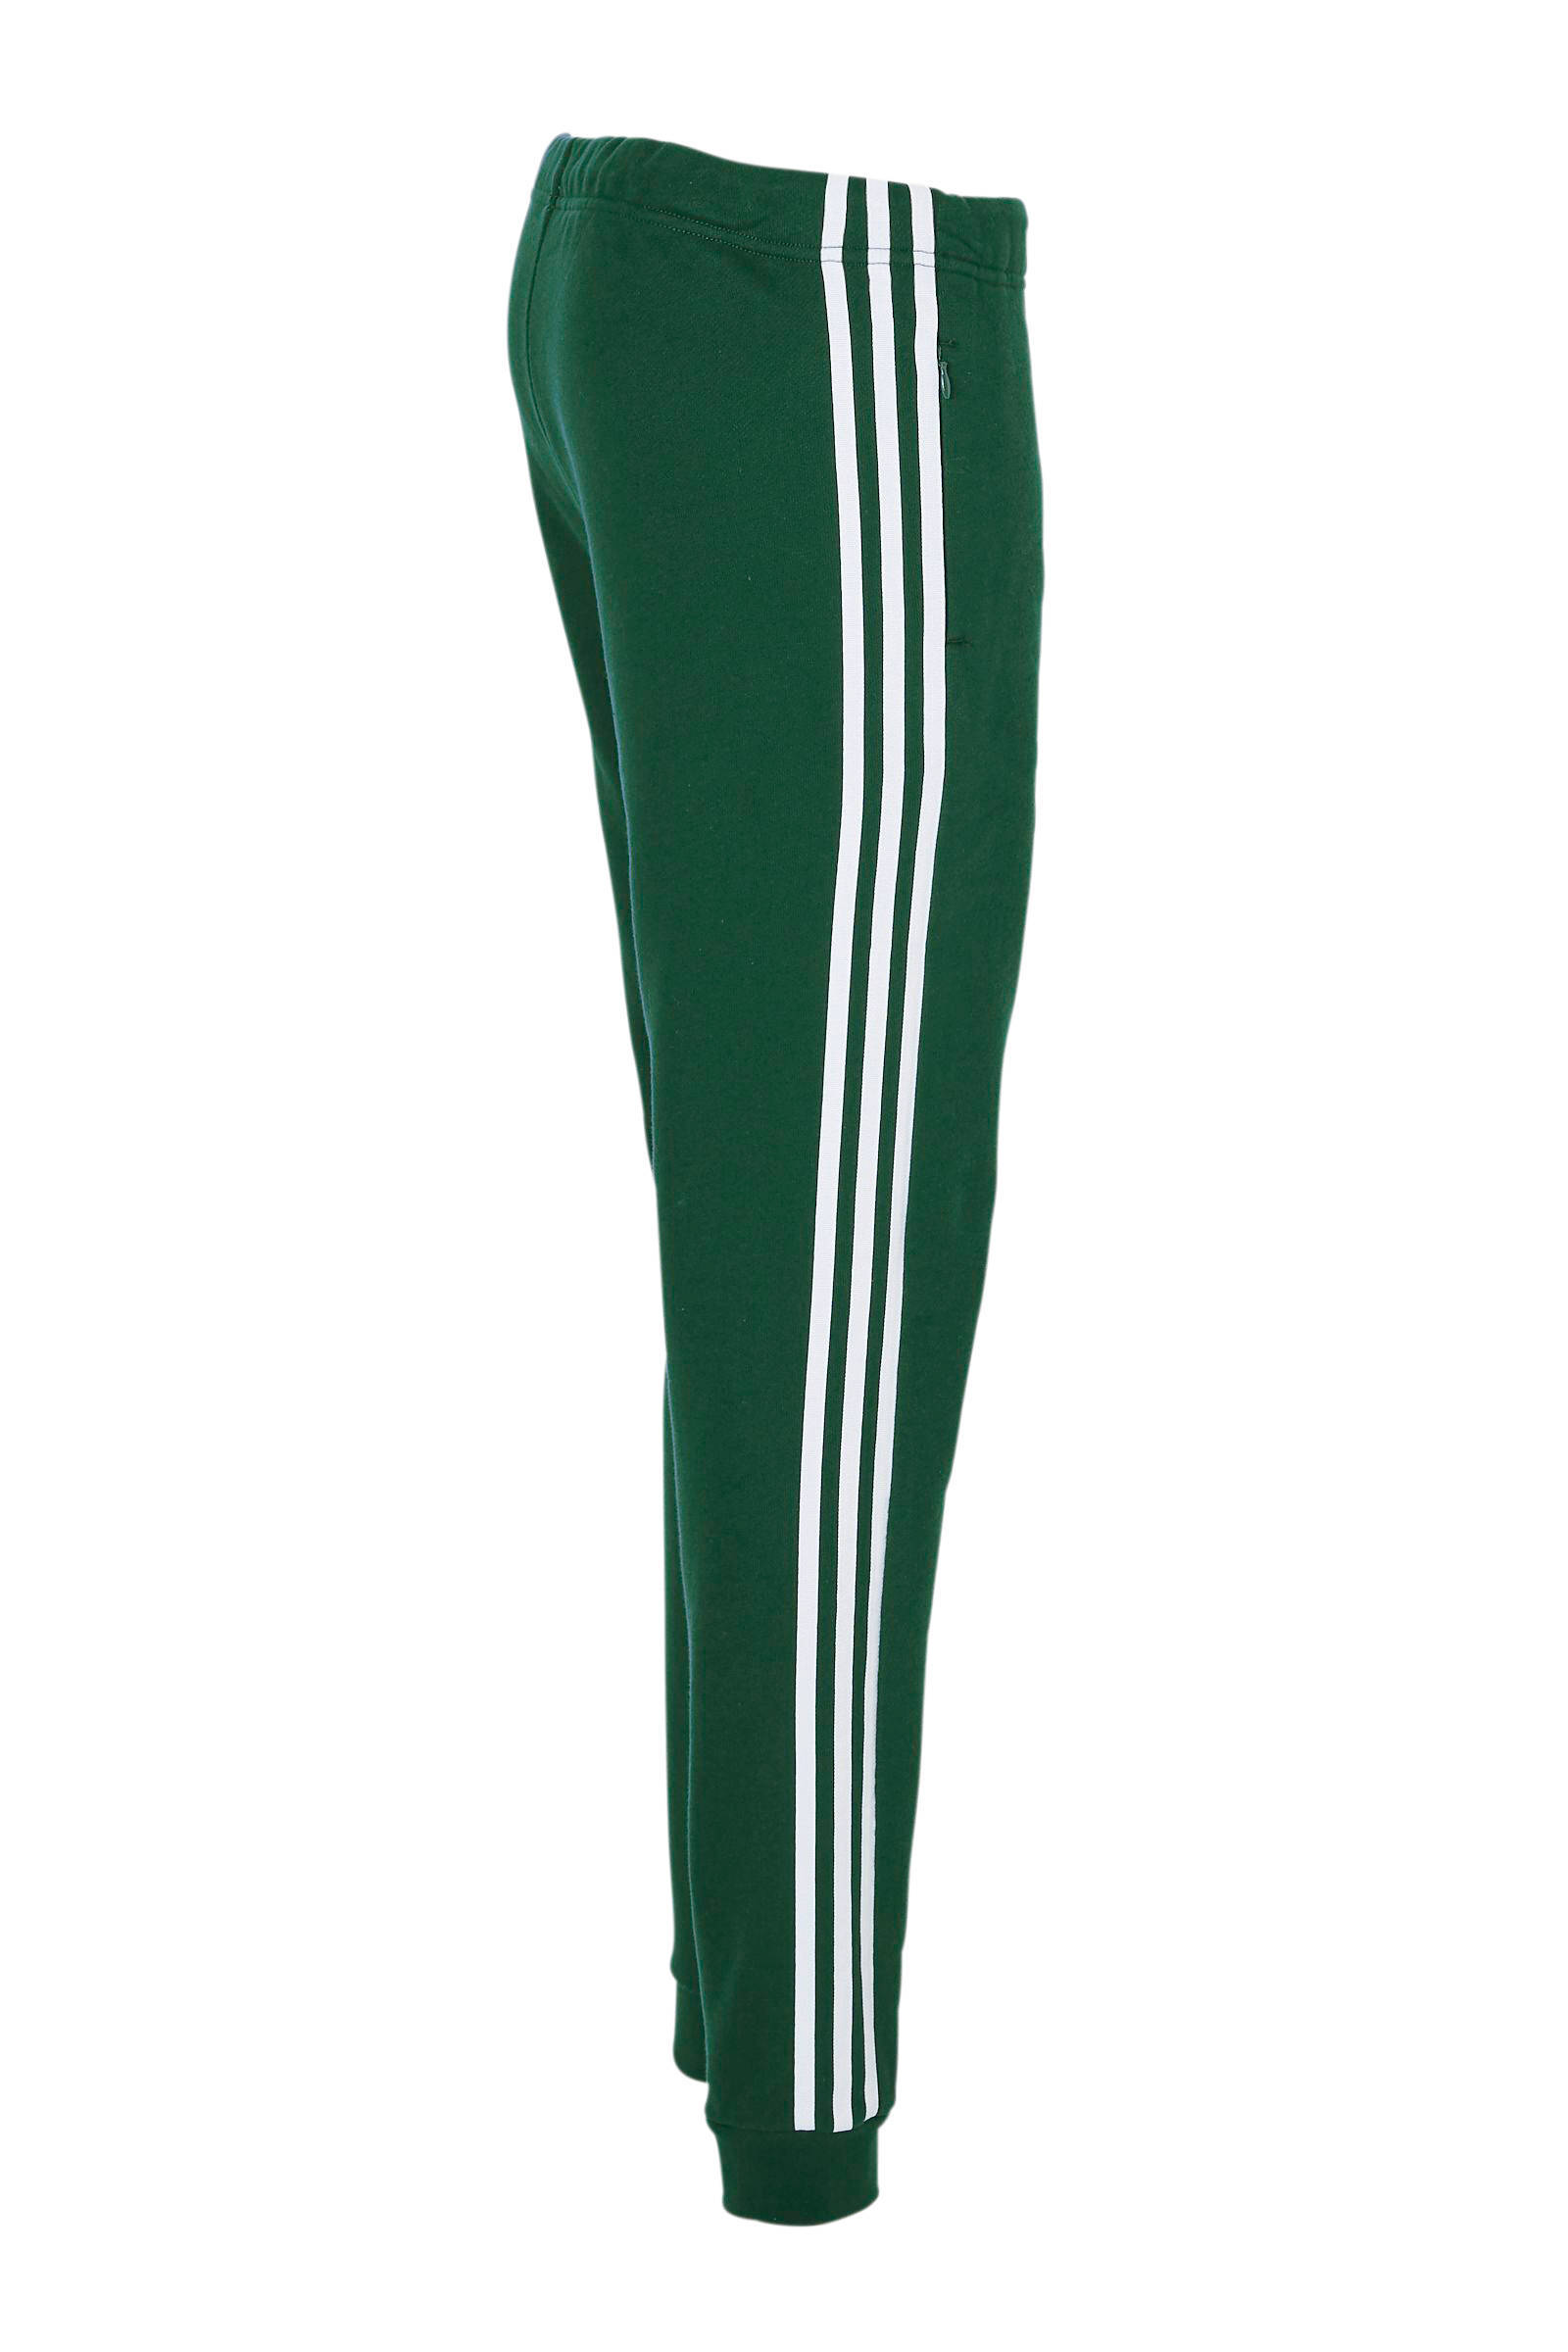 adidas Originals joggingbroek groen | wehkamp